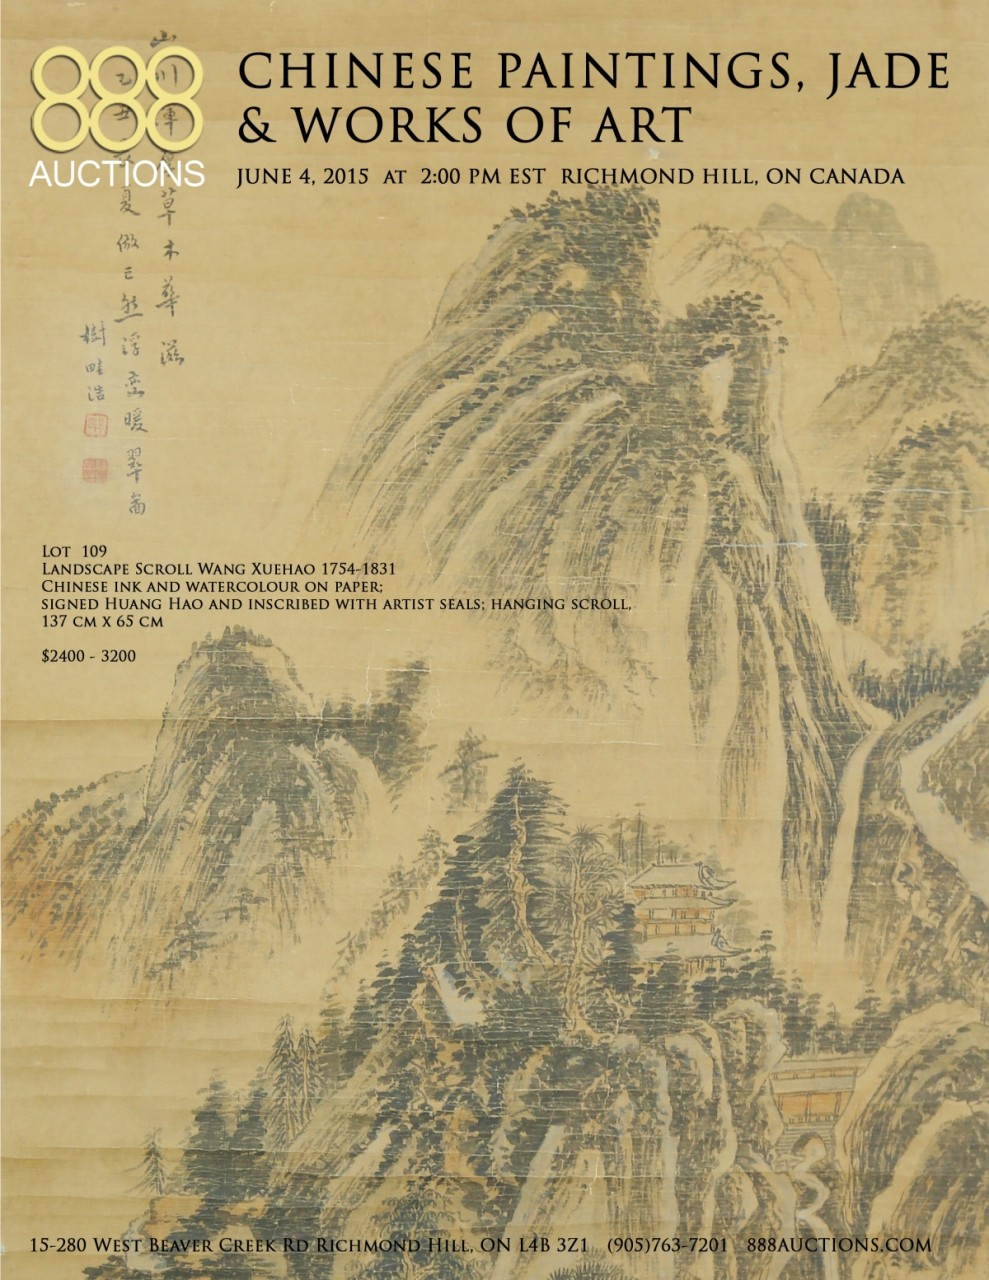 04 JUNE 2015 CHINESE PAINTINGS, JADE & WORKS OF ART